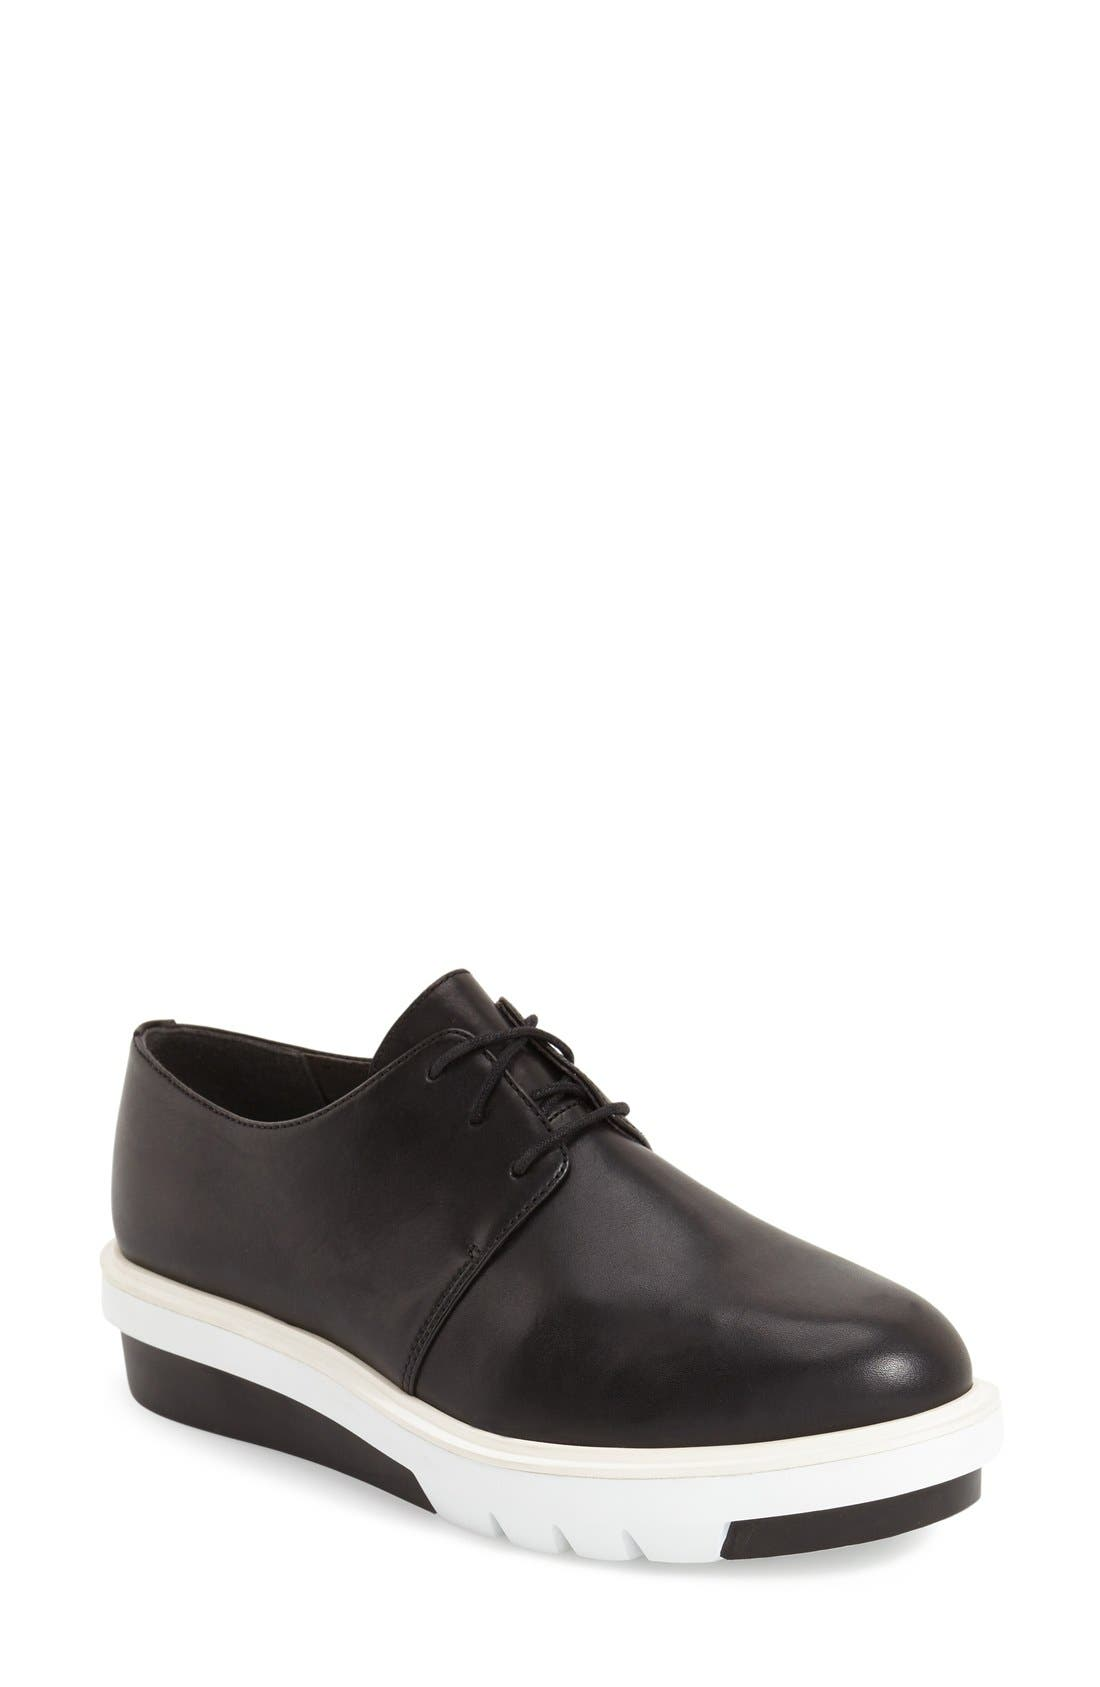 Alternate Image 1 Selected - Camper 'Marta' Platform Oxford (Women)